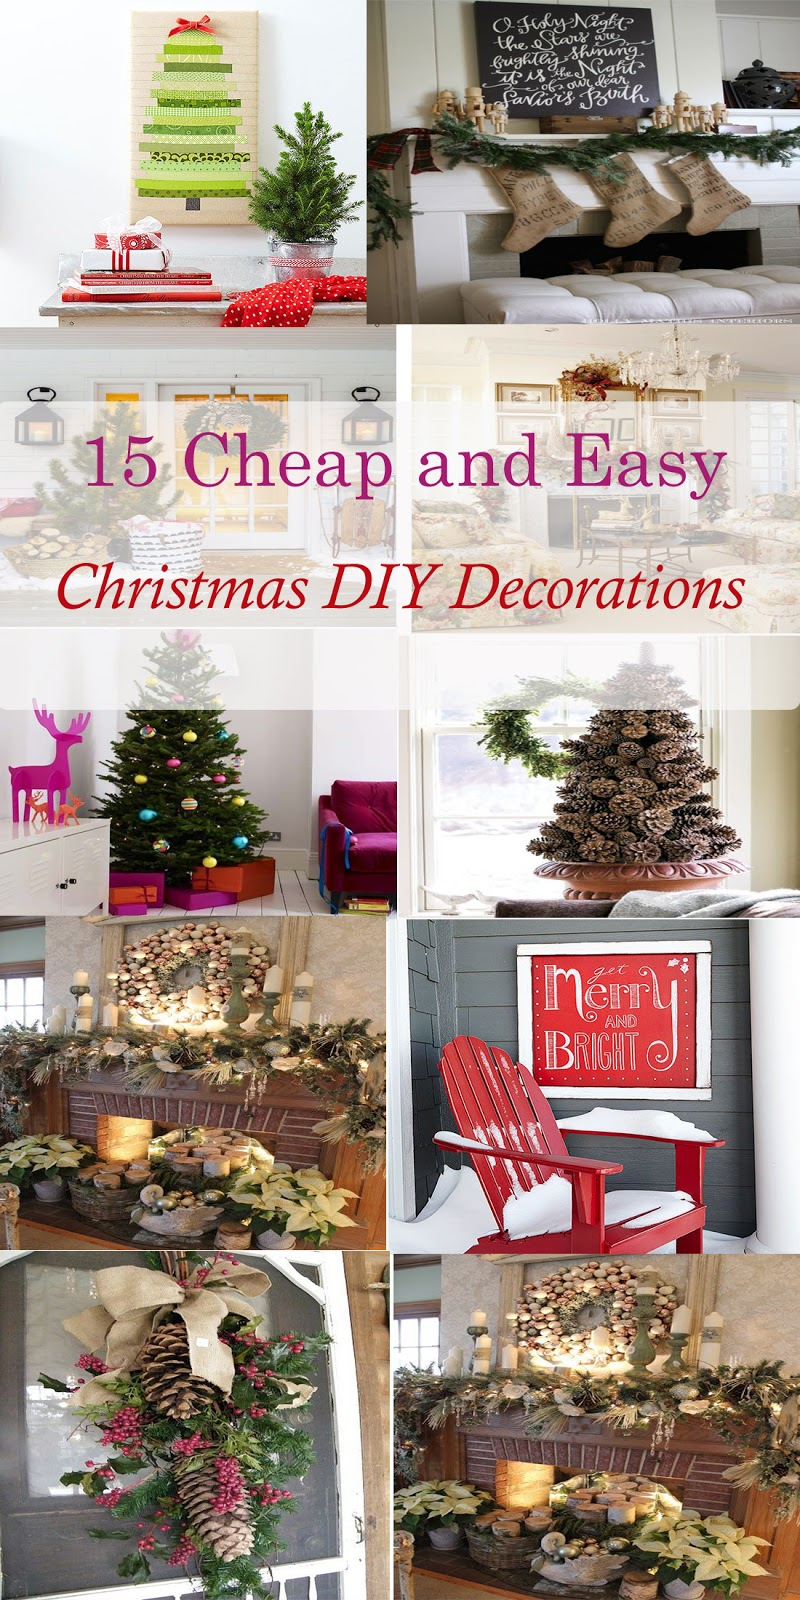 Christmas Stuff: 15 Cheap And Easy Christmas DIY Decorations